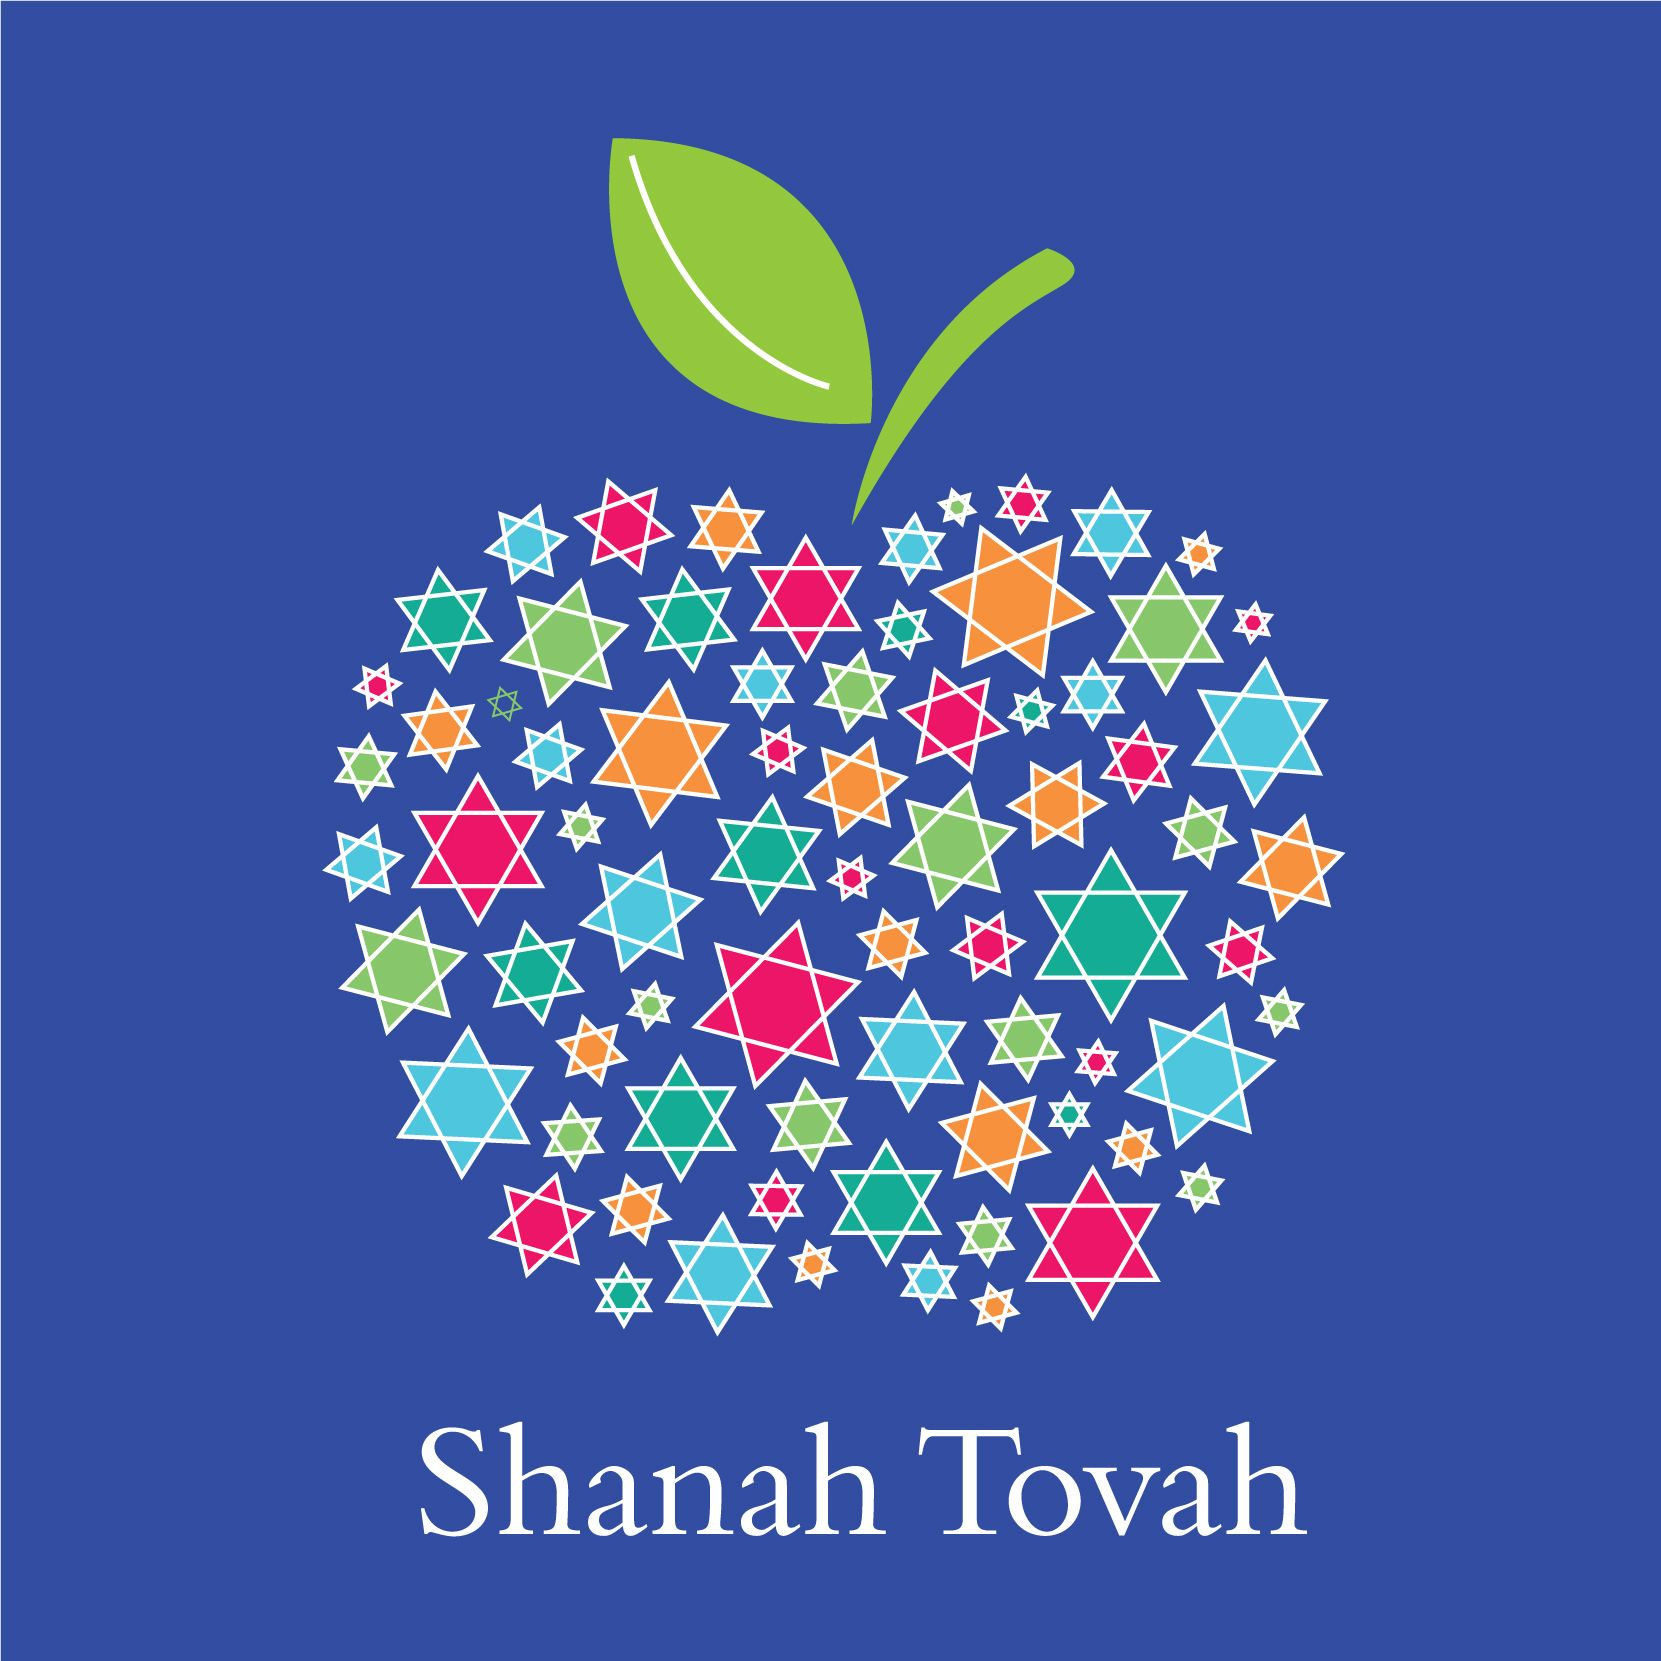 Rosh hashana shanah tovah happy new year jewish greetings cards rosh hashana shanah tovah happy new year kristyandbryce Choice Image